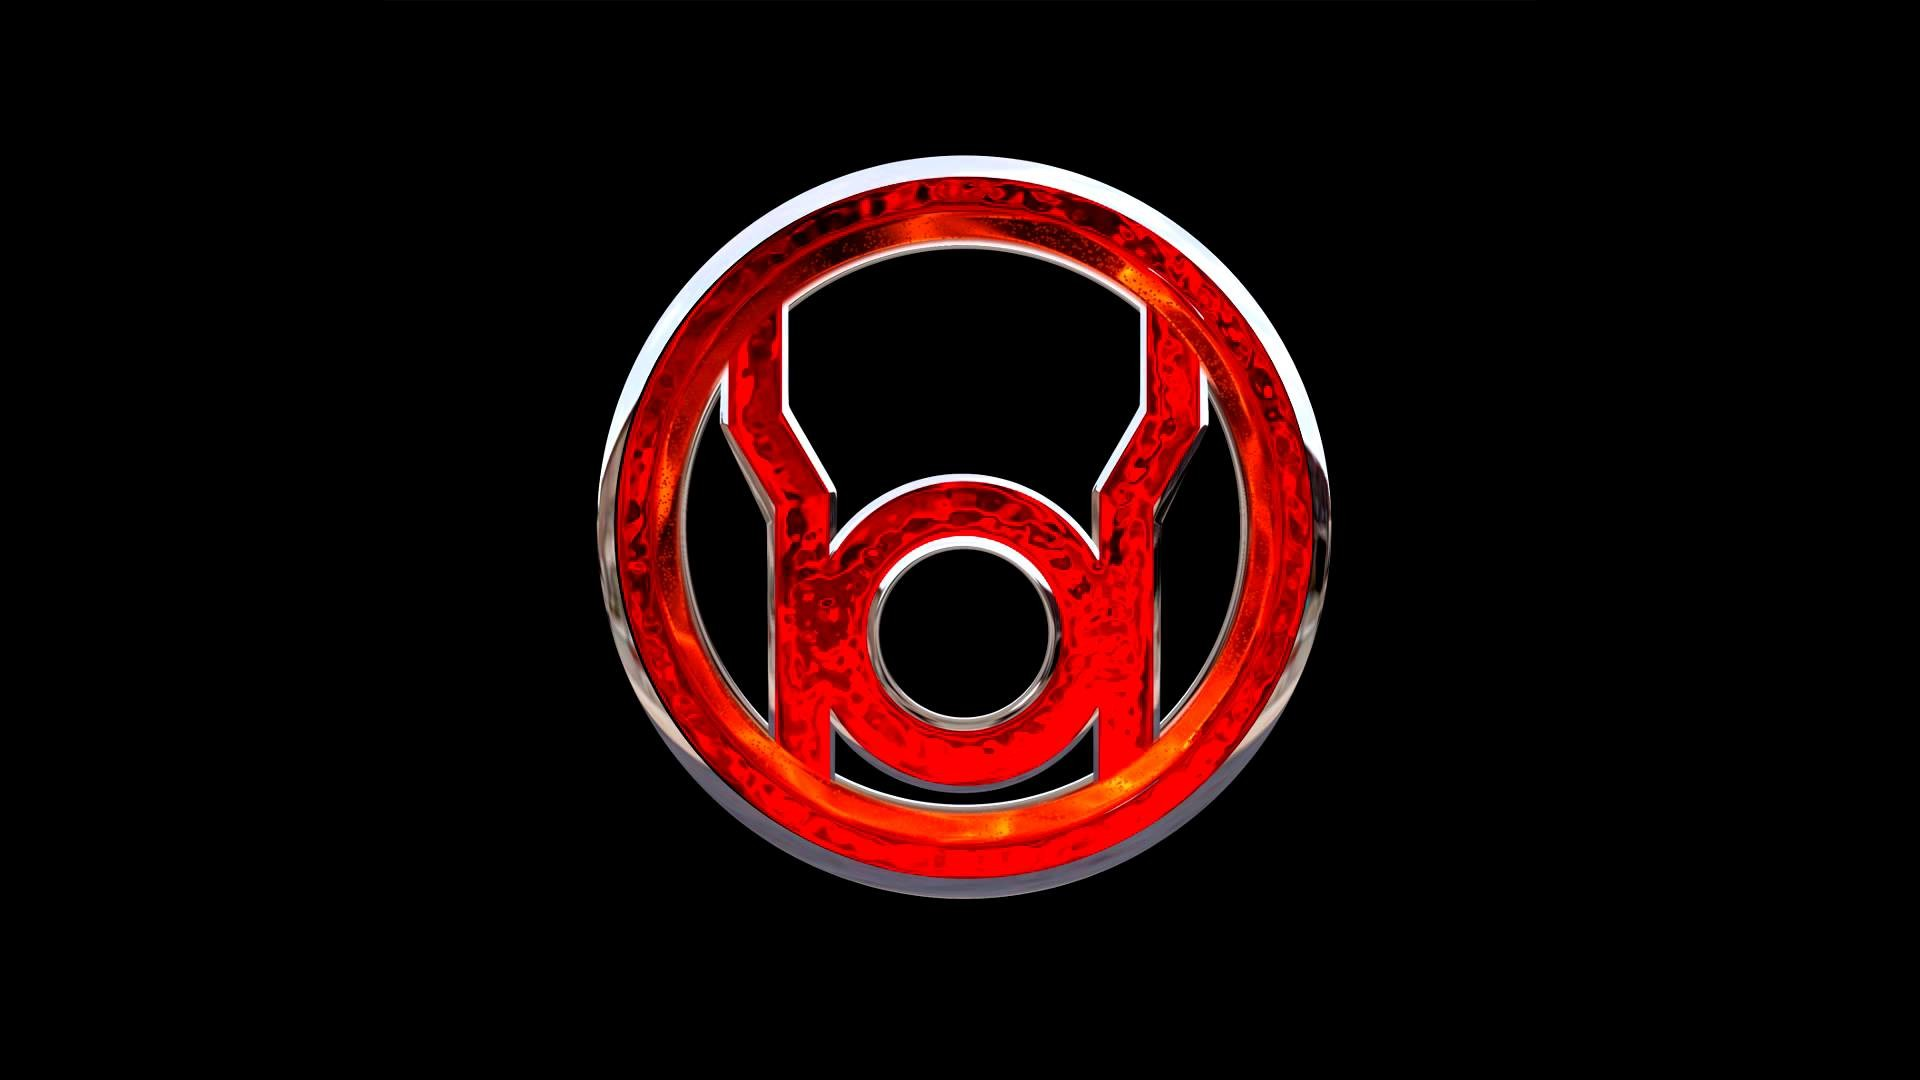 Red Lantern Symbol Wallpaper (62+ images).